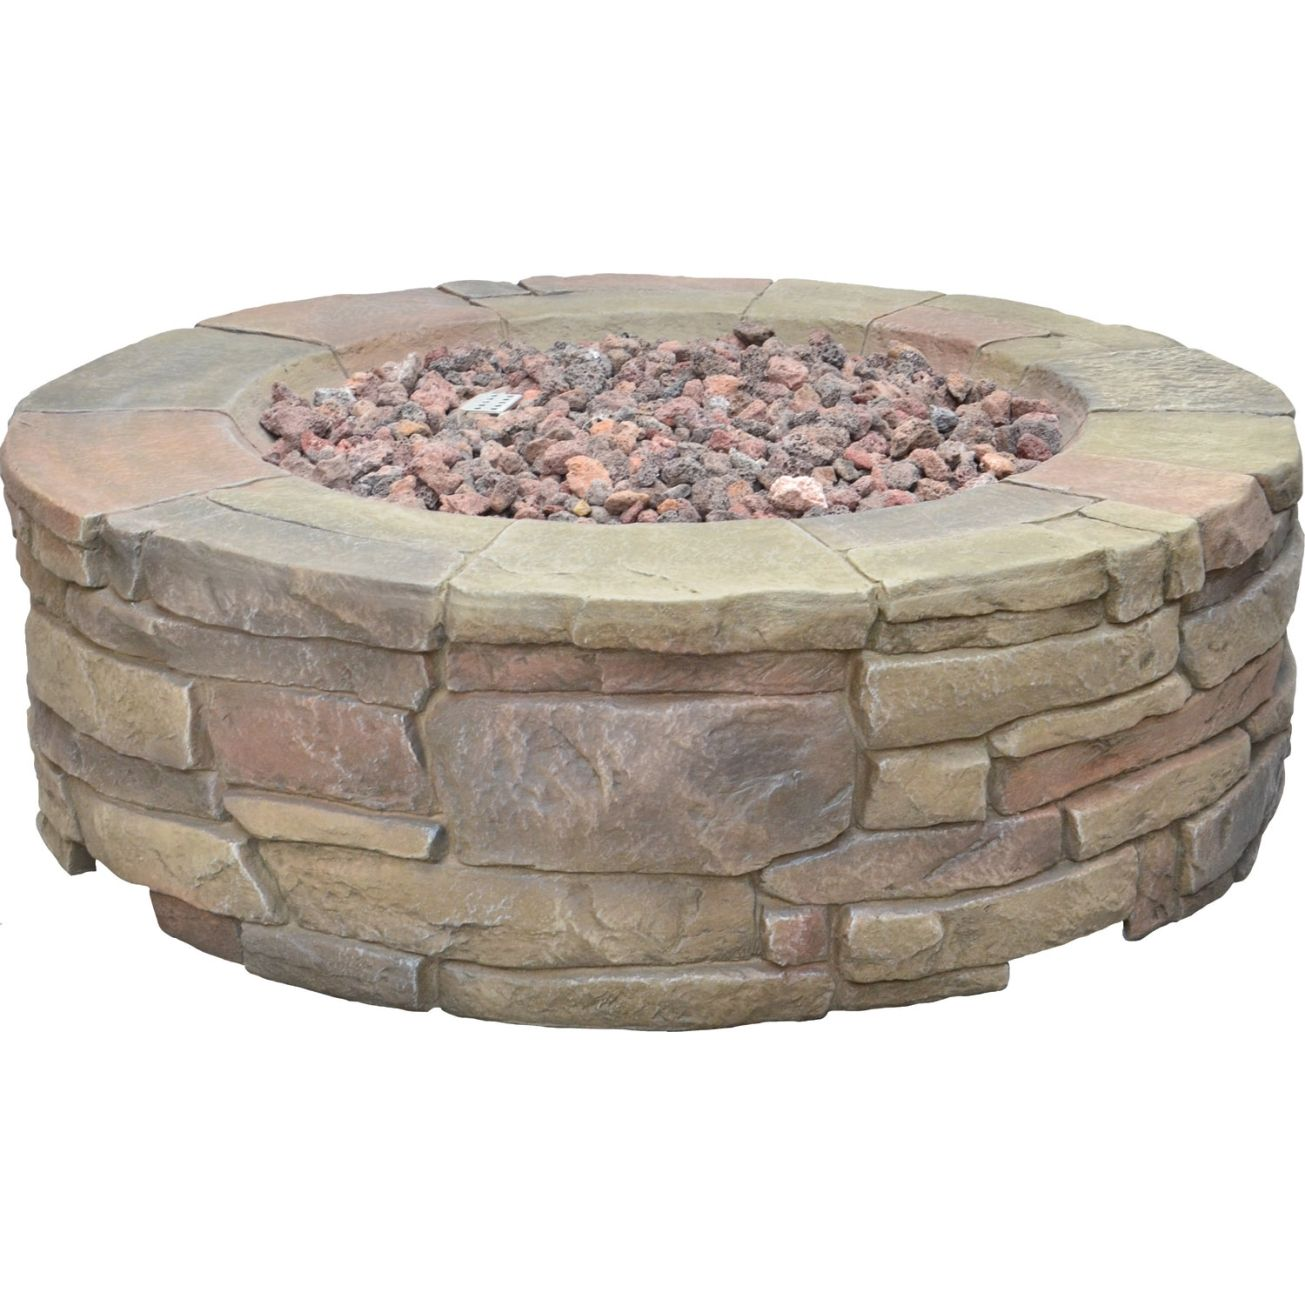 Petra Gas Firepit (67803A) - Outdoor Fireplaces - Ace ... on Ace Hardware Fire Pit  id=74939